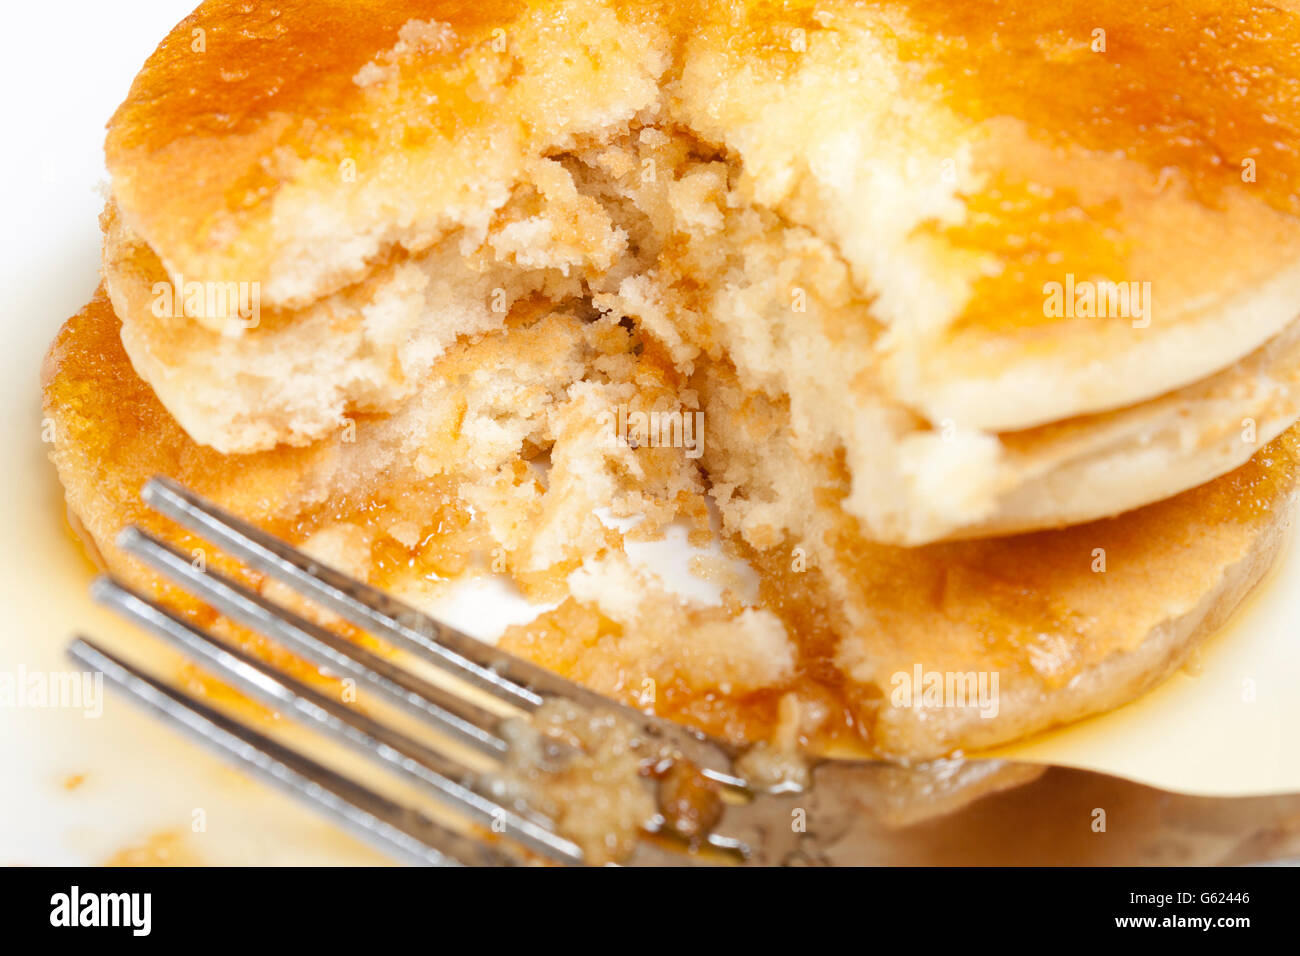 Close up shot of a stack of fresh golden pancakes covered in maple syrup with a fork viewed from above - Stock Image